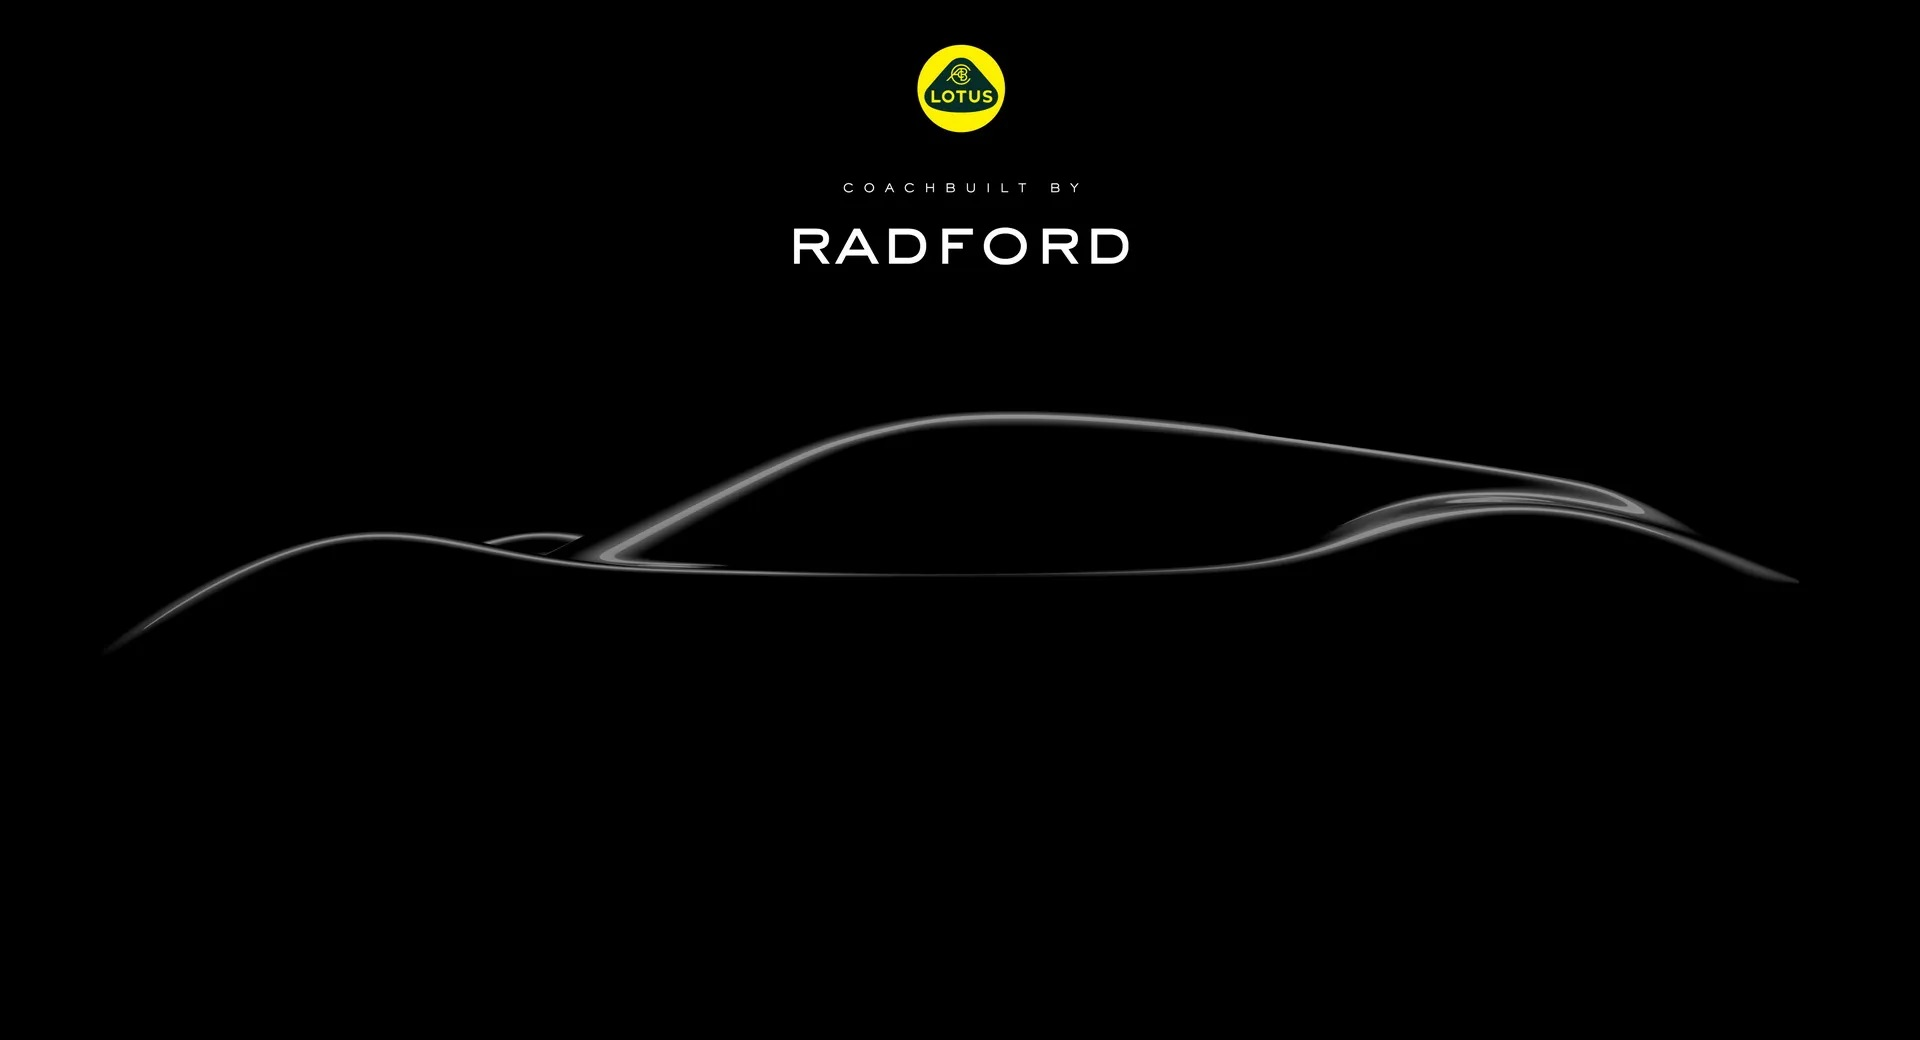 The once deceased London coachbuilder Harold Radford returns under the name of H.Radford (Coachbuilders) Ltd and even has a teaser pic of a coming car to show us.